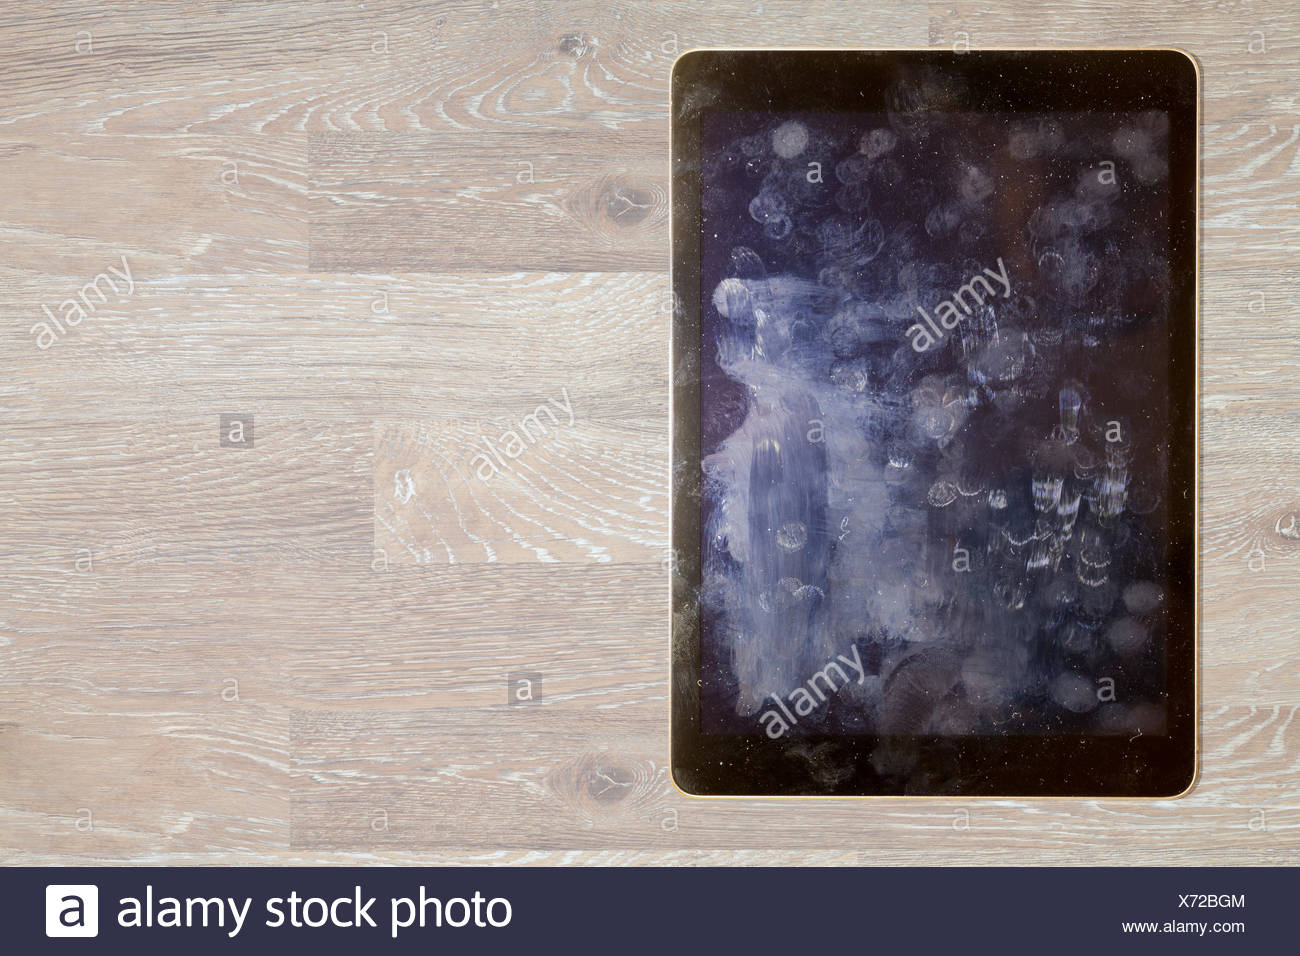 View of fingerprints and grease on tablet screen - Stock Image